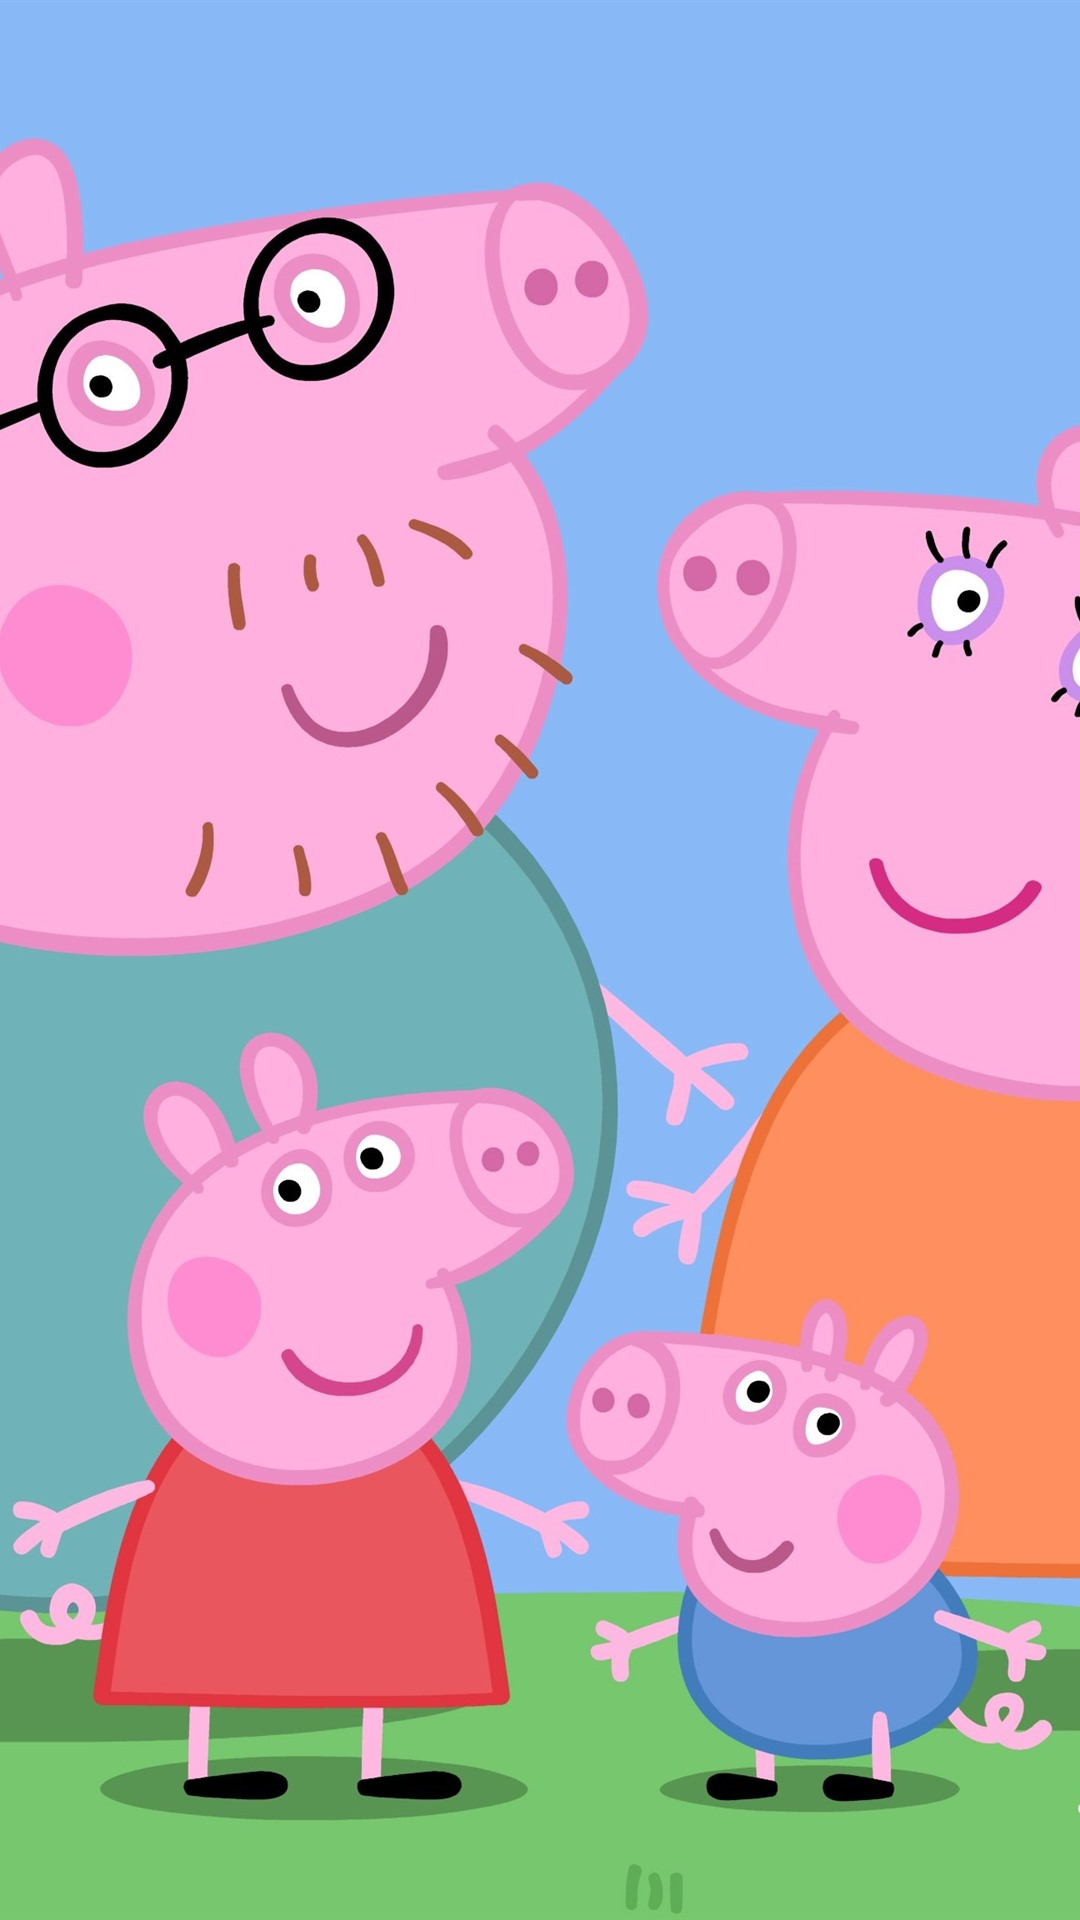 Peppa Pig Classic Anime 1080x1920 Iphone 8 7 6 6s Plus